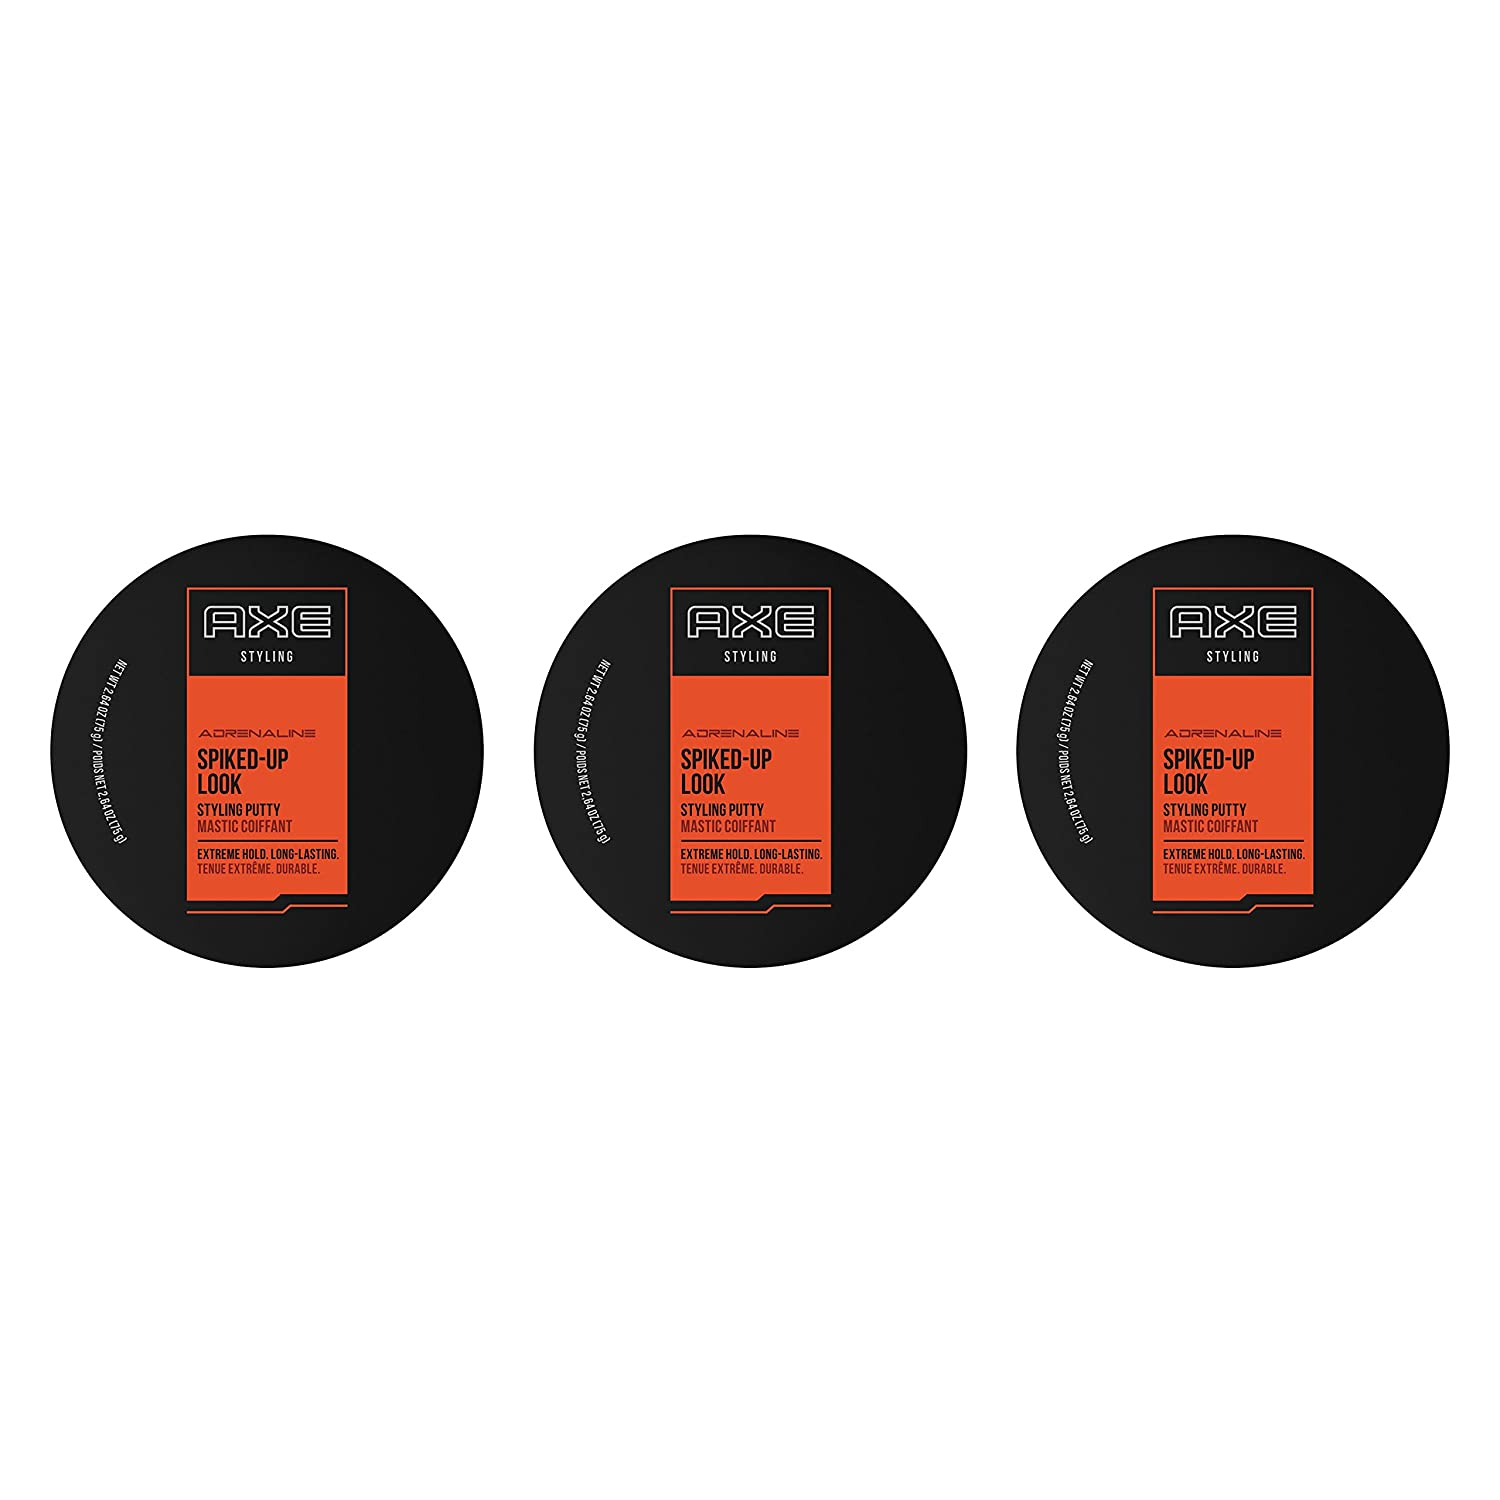 Axe Spiked Up Look Styling Putty, Extreme Hold, 2.64 Ounce (Pack of 3)